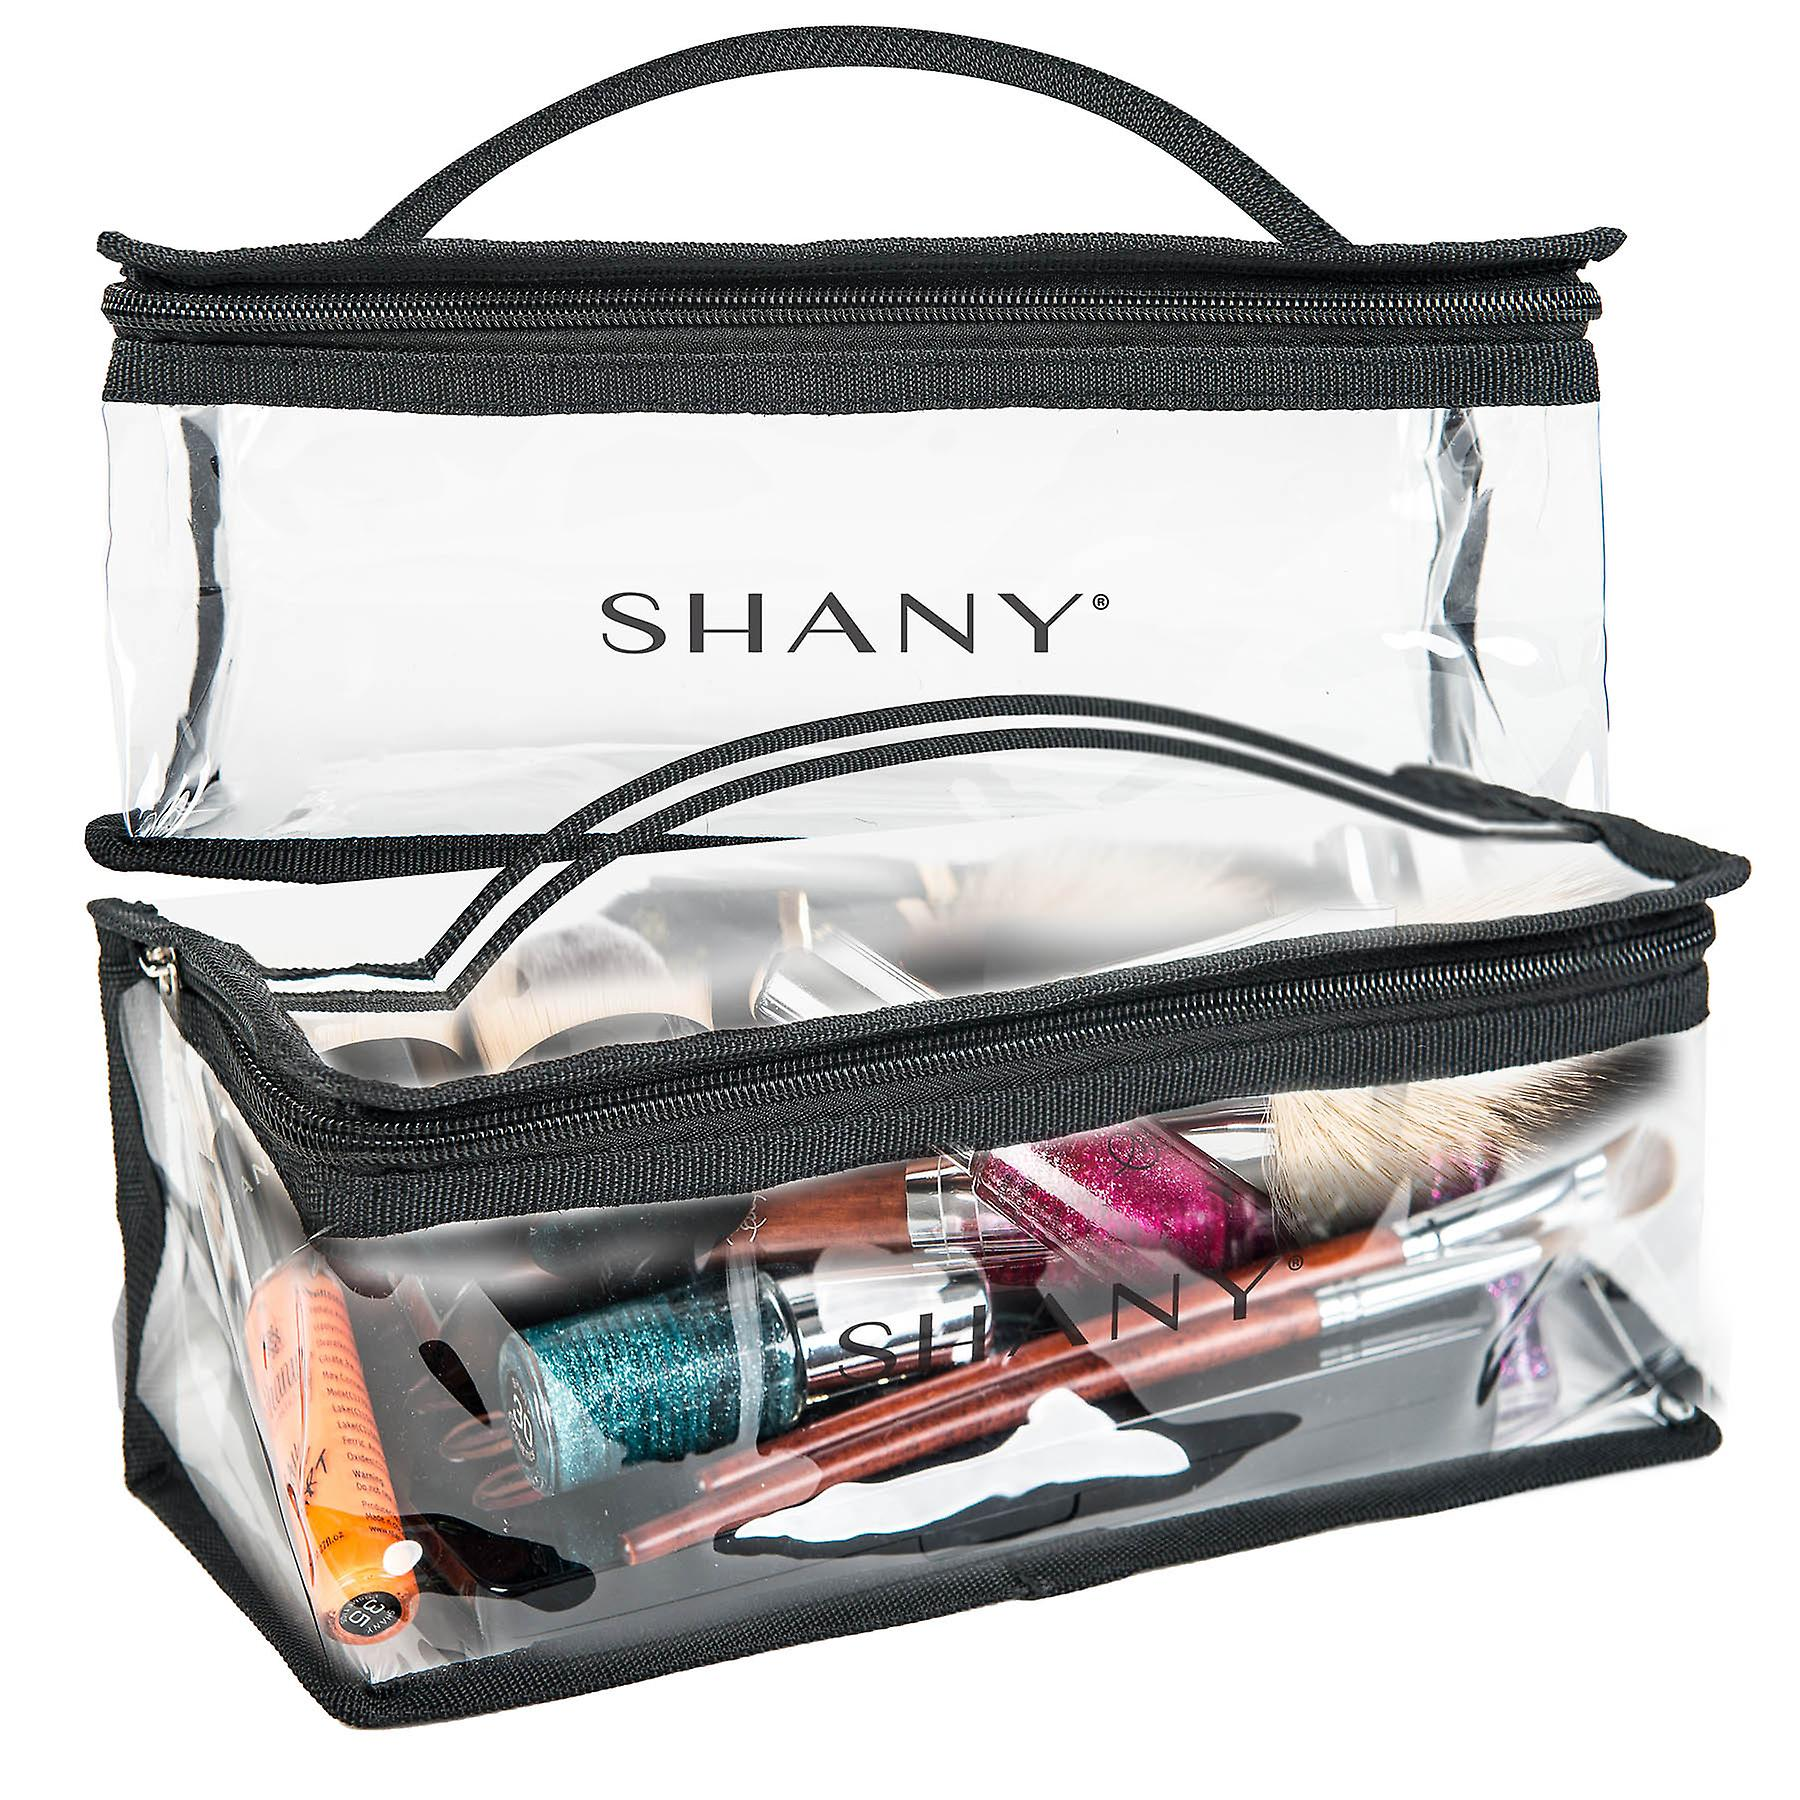 SHANY Road Trip Travel Bag - Water Proof Storage for at Home or Travel Use